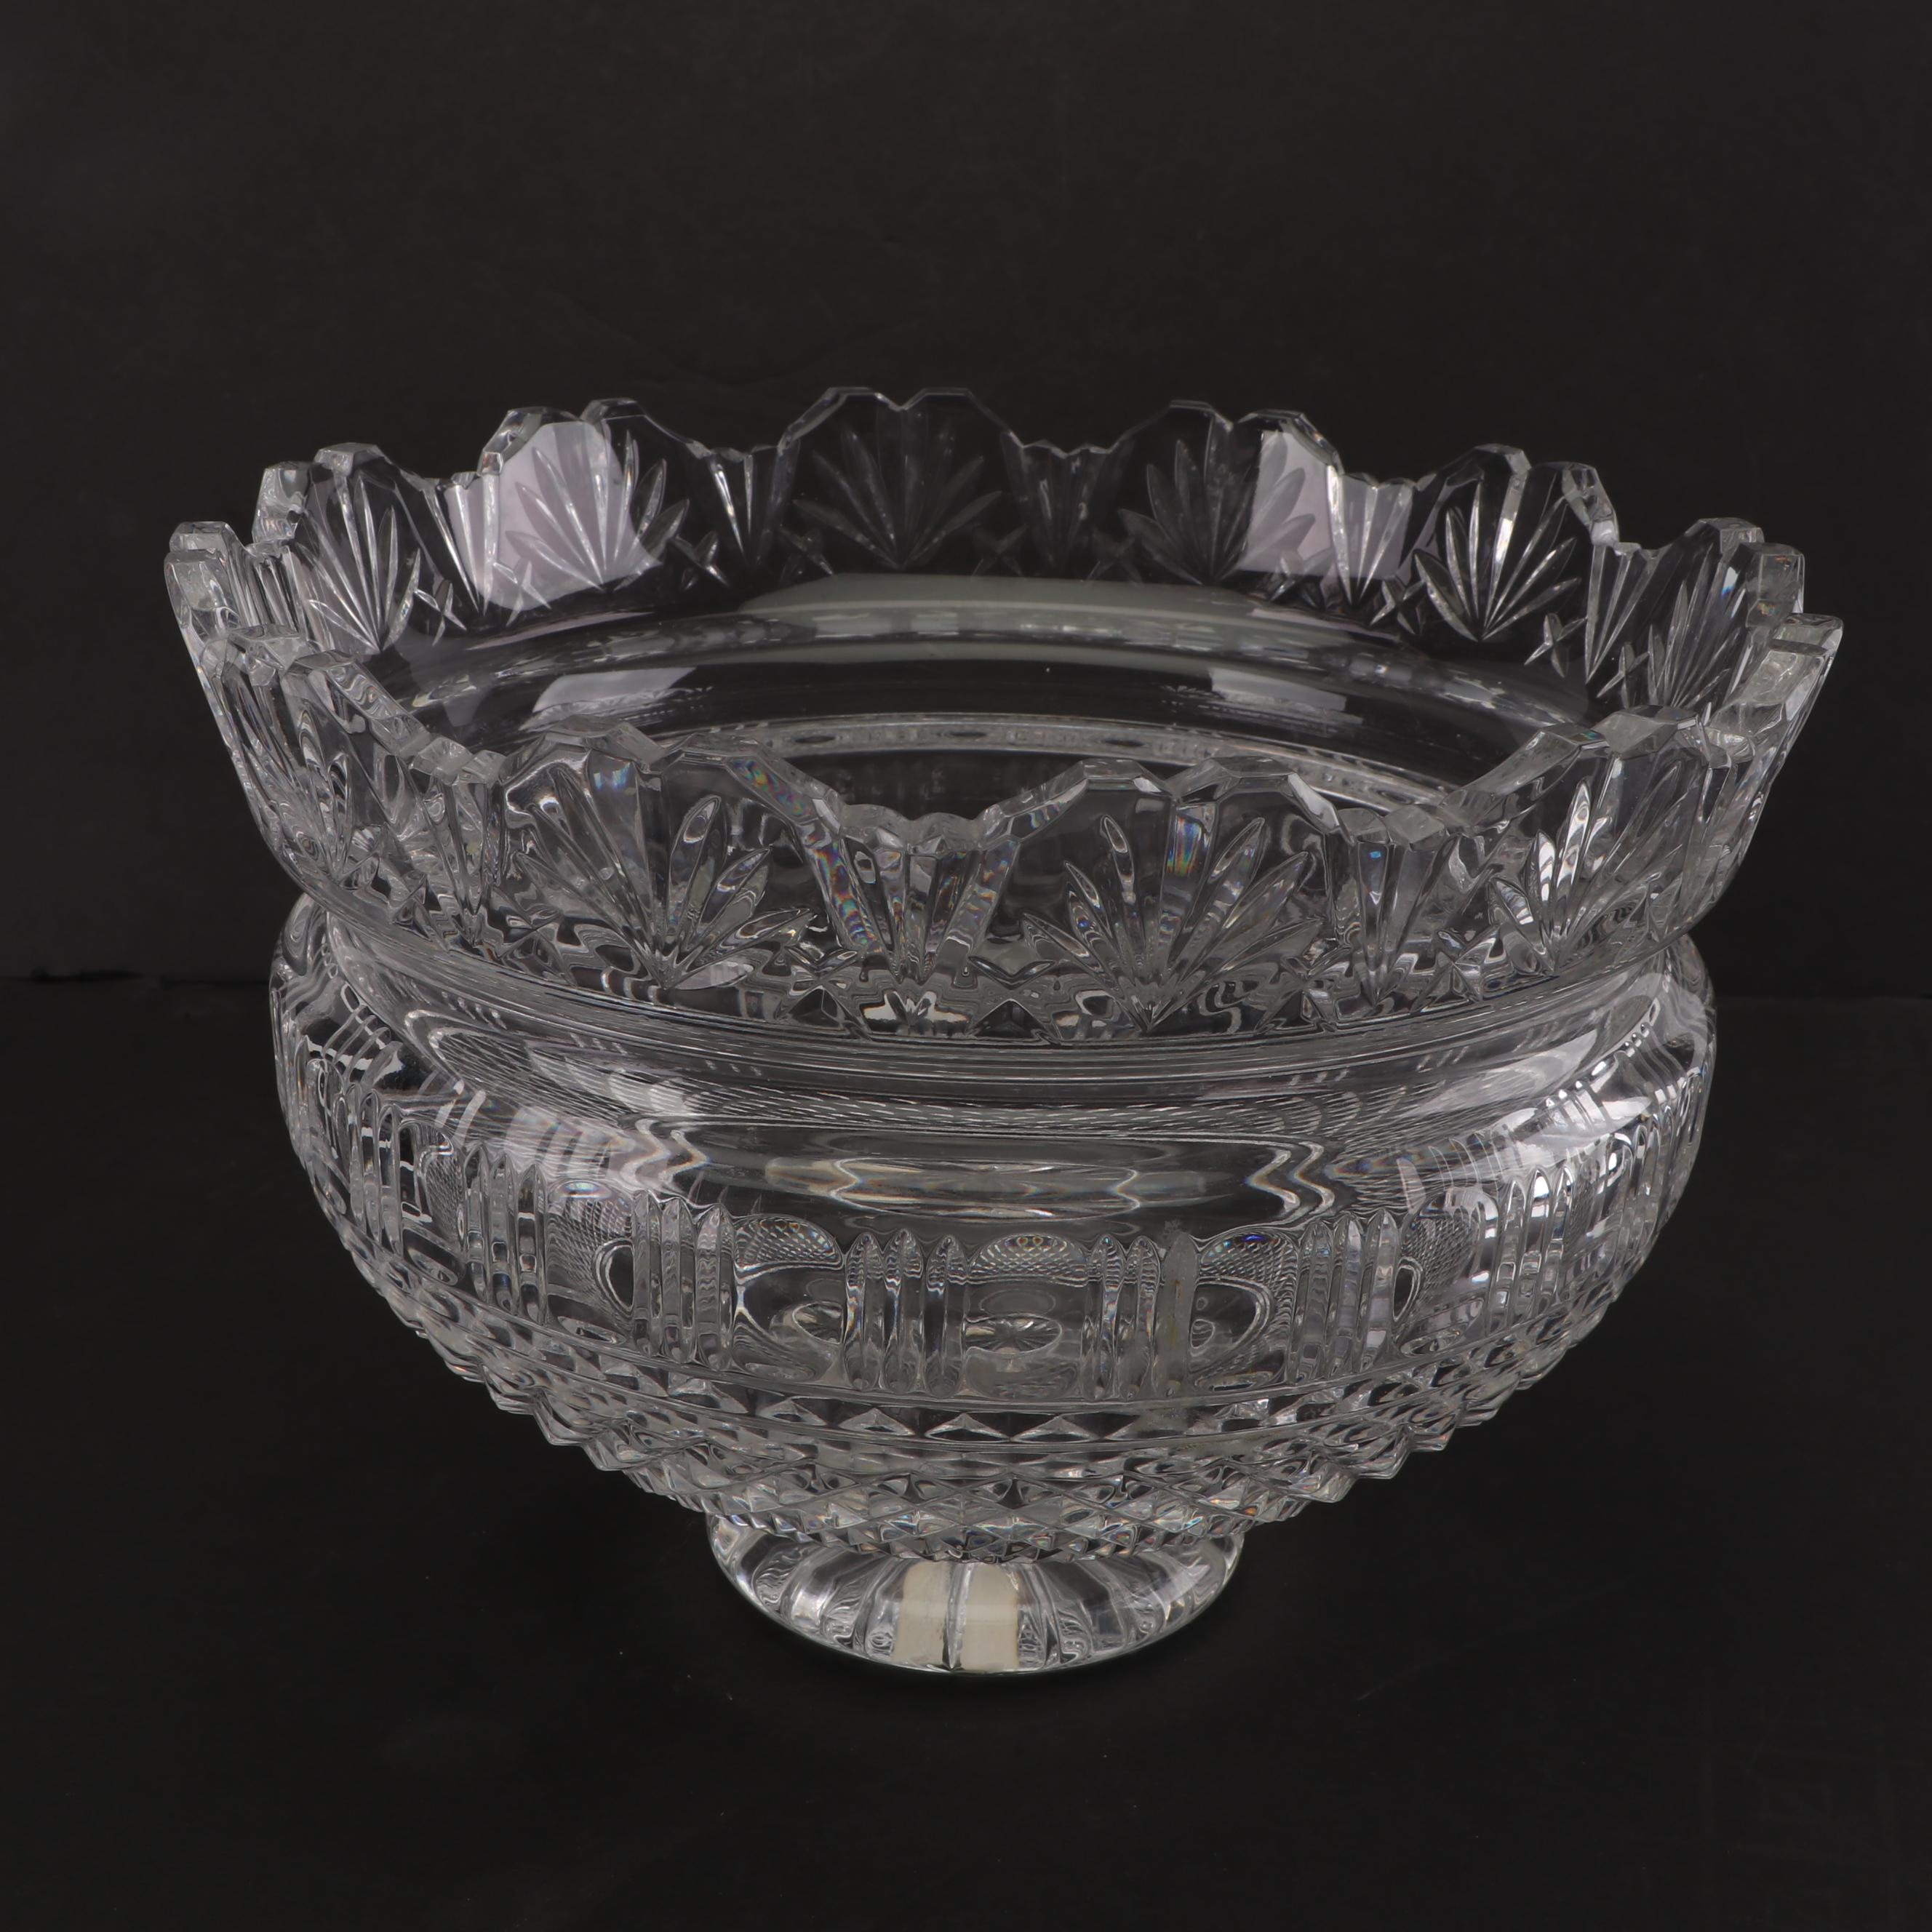 """Waterford Crystal """"Kings"""" Bowl from the Designers Gallery Collection"""